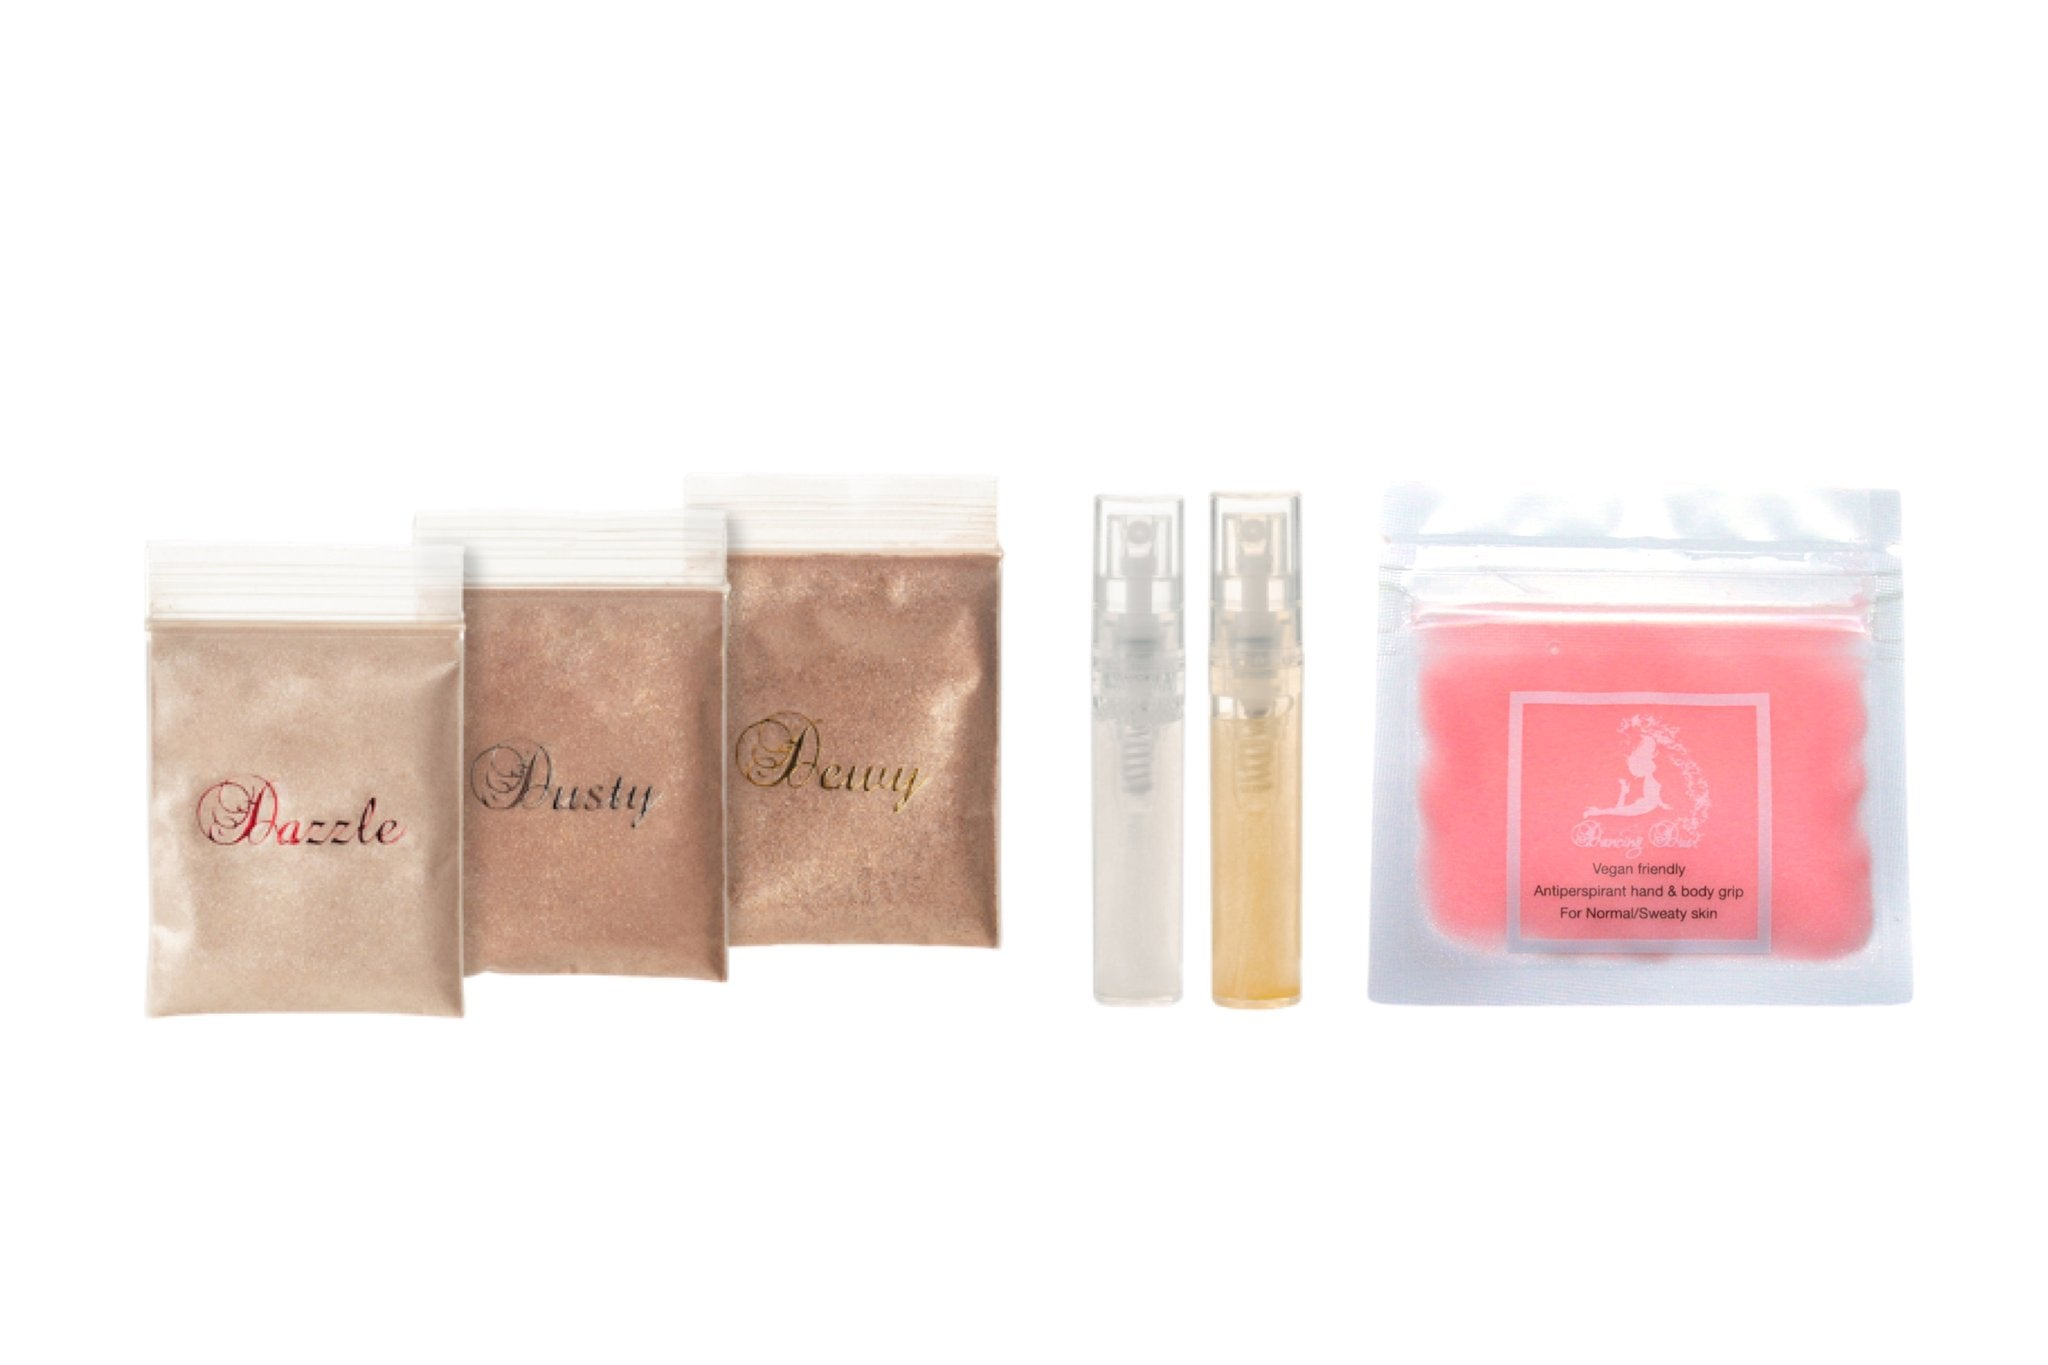 Dancing Dust Body Shimmer Sample Tester Pack